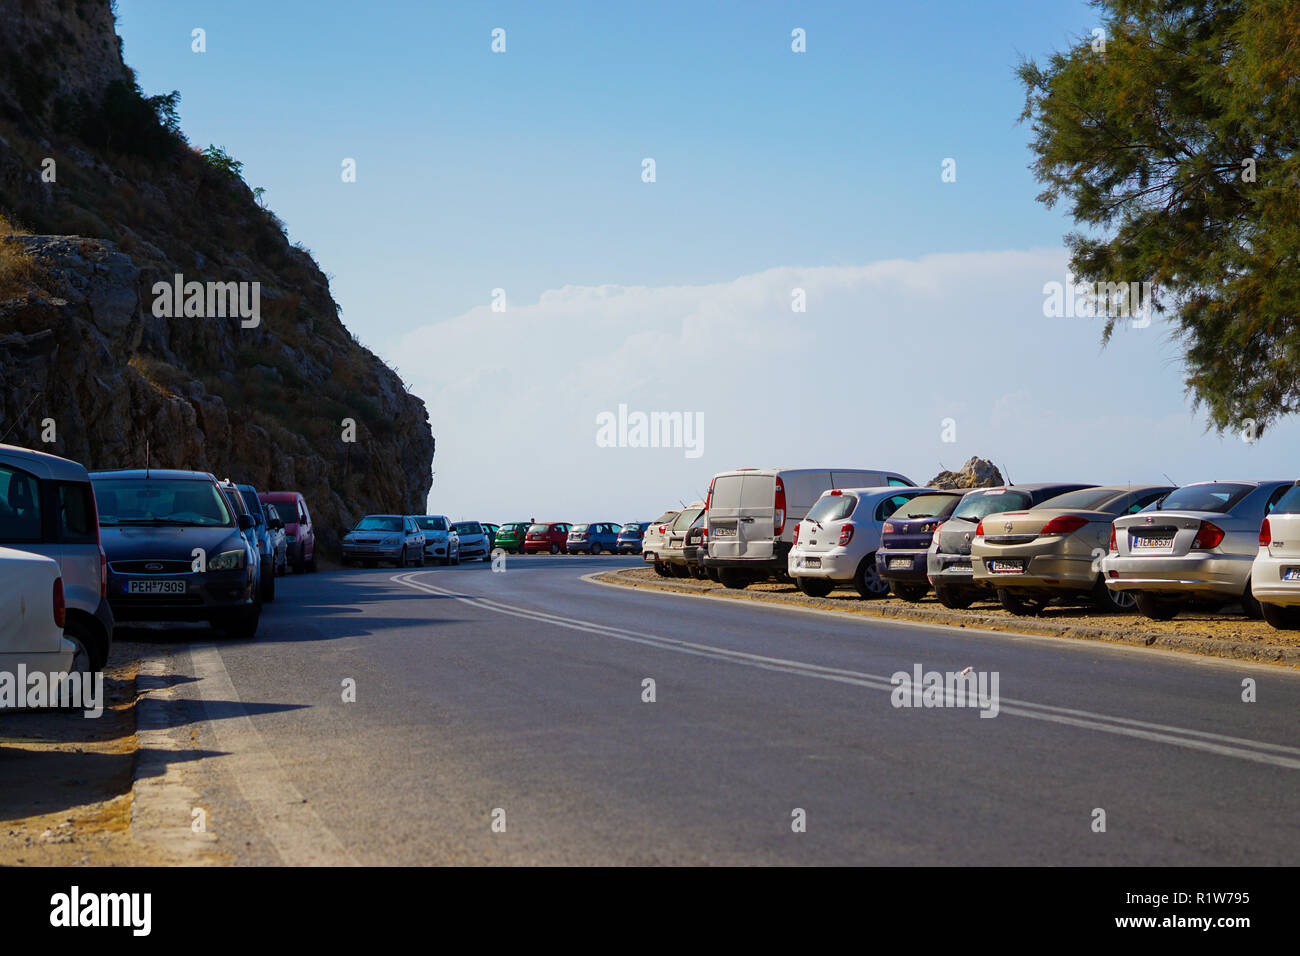 Cars parked along winding road next to cliff. Rethimno, Crete. - Stock Image